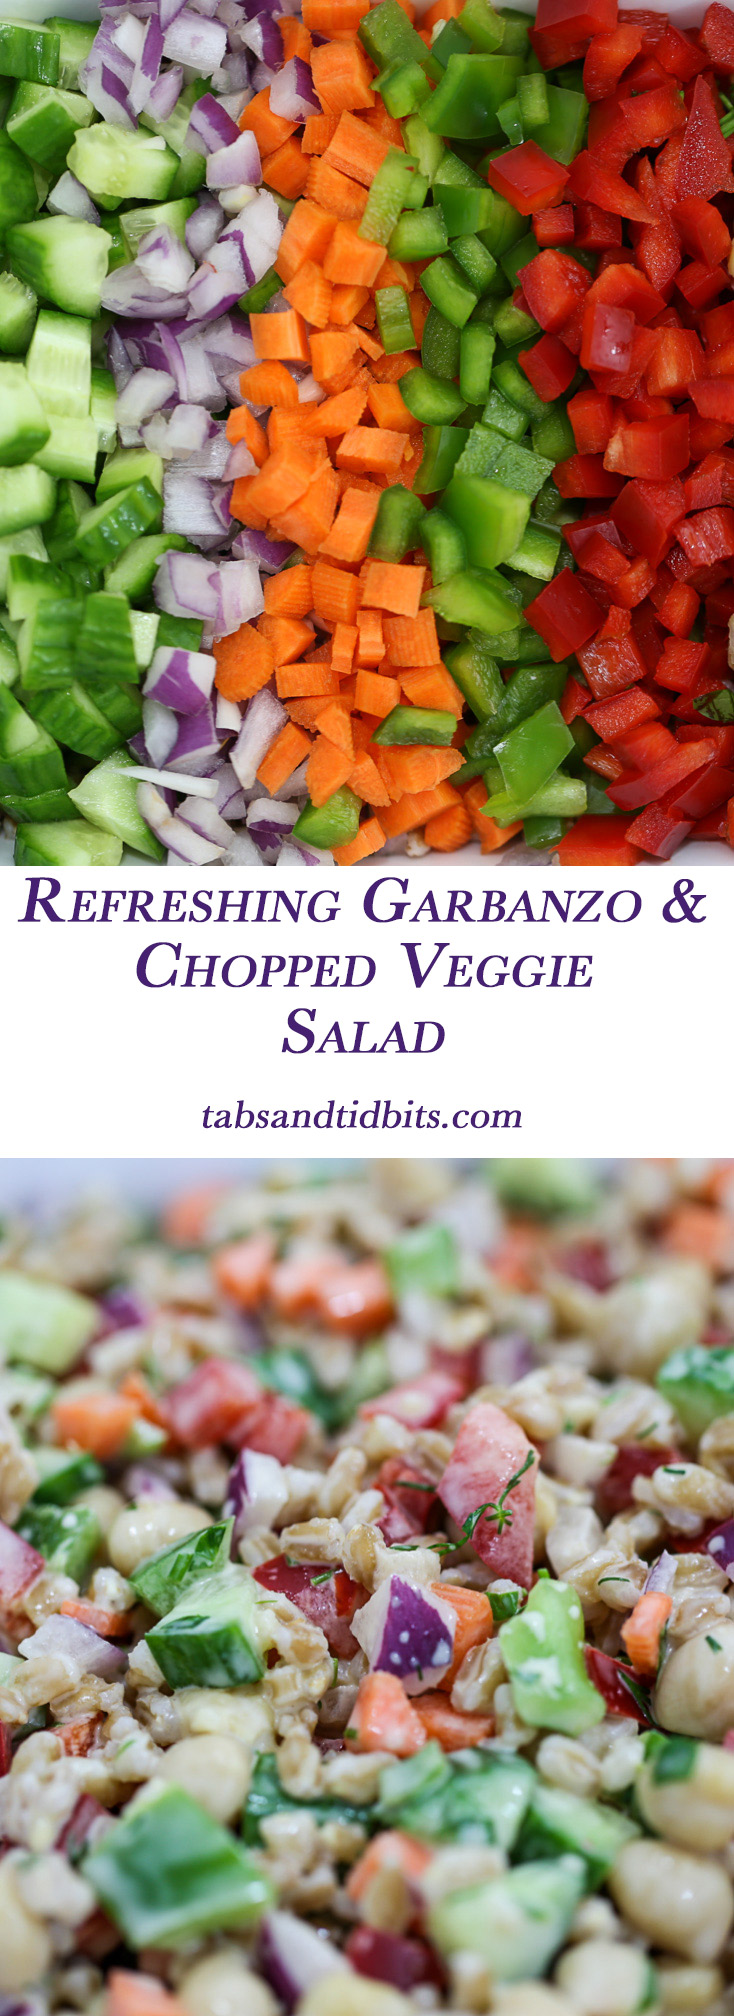 Refreshing Garbanzo & Chopped Veggie Salad - A delicious combination of fresh chopped veggies and herbs with farro and garbanzo beans completed with a creamy dill dressing.